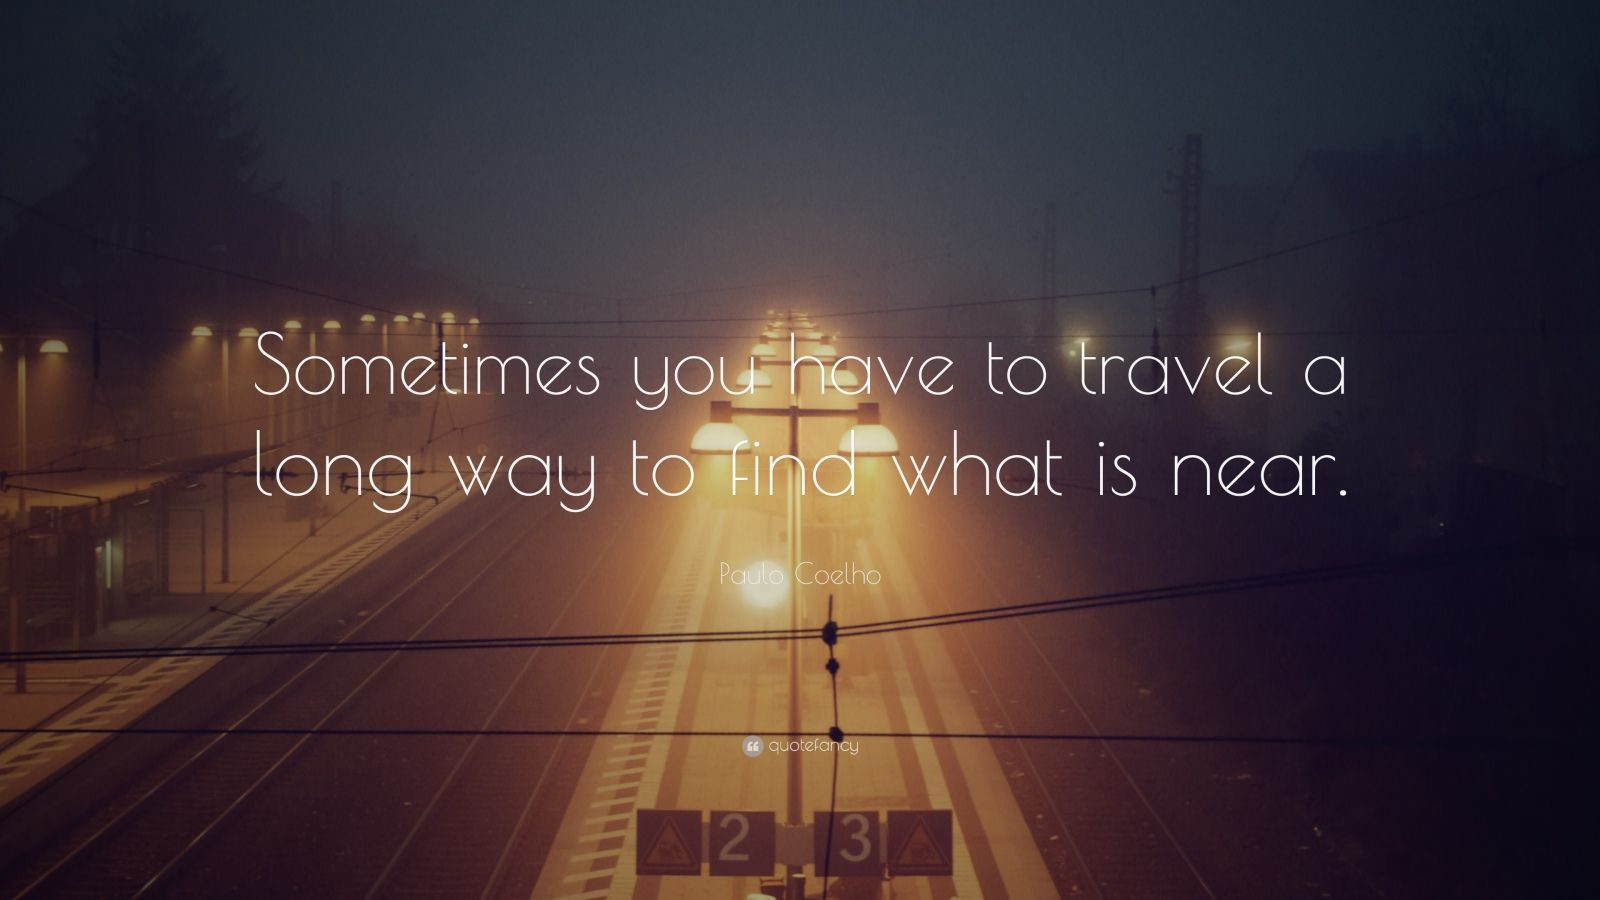 Paulo Coelho Quote: U201cSometimes You Have To Travel A Long Way To Find What